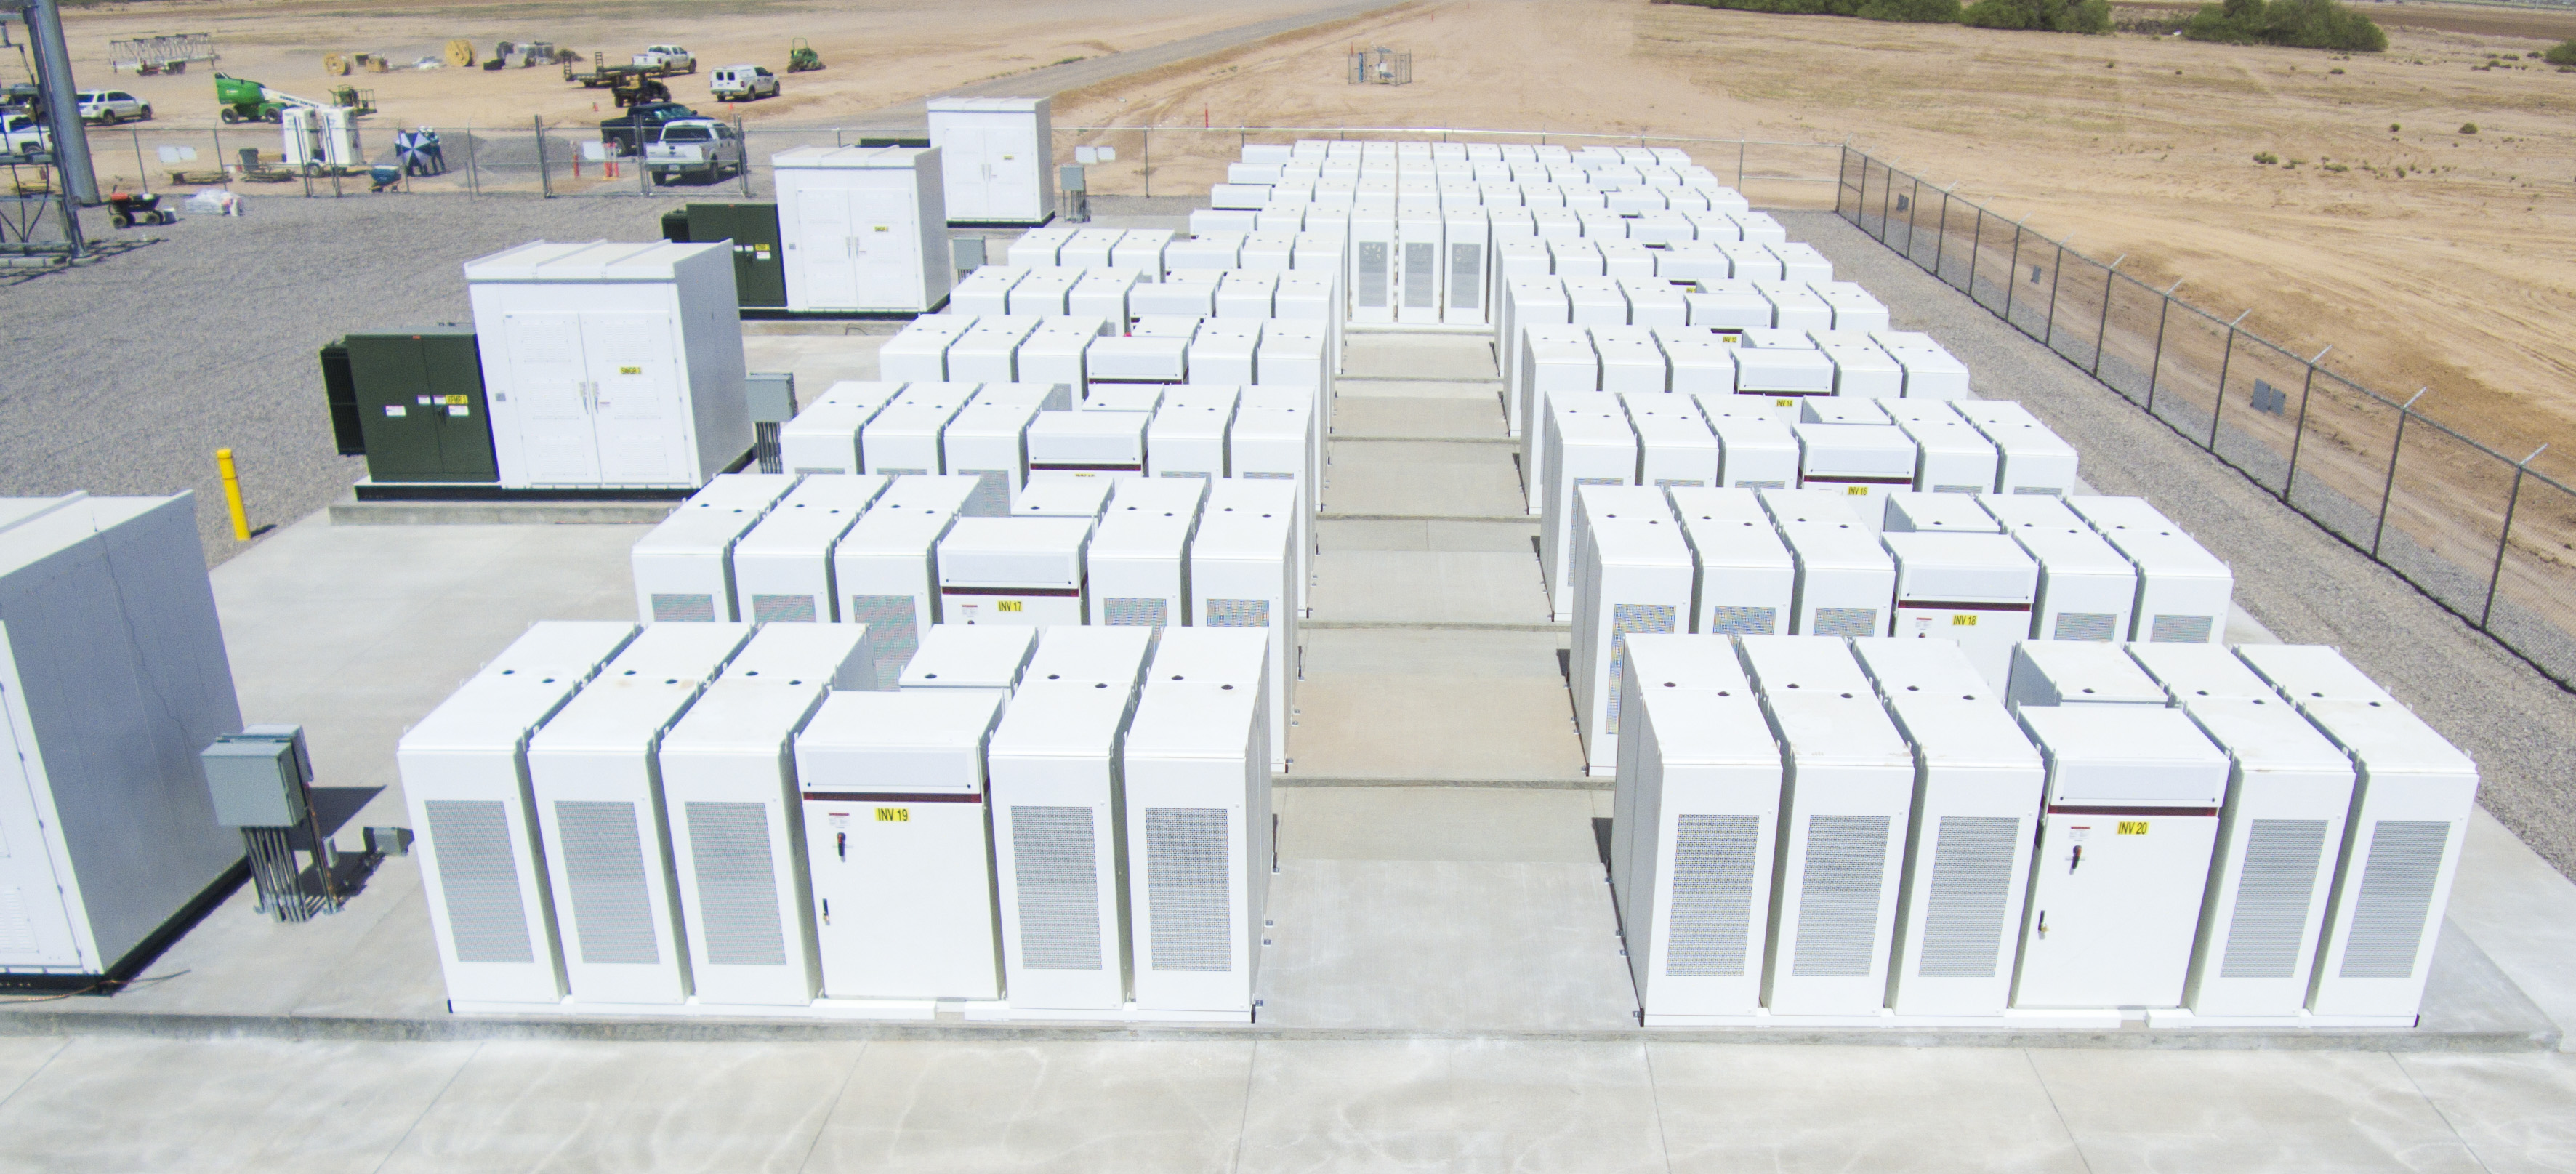 Tesla and others to deliver over 2 GWh of energy storage in California project to replace 3 gas plants